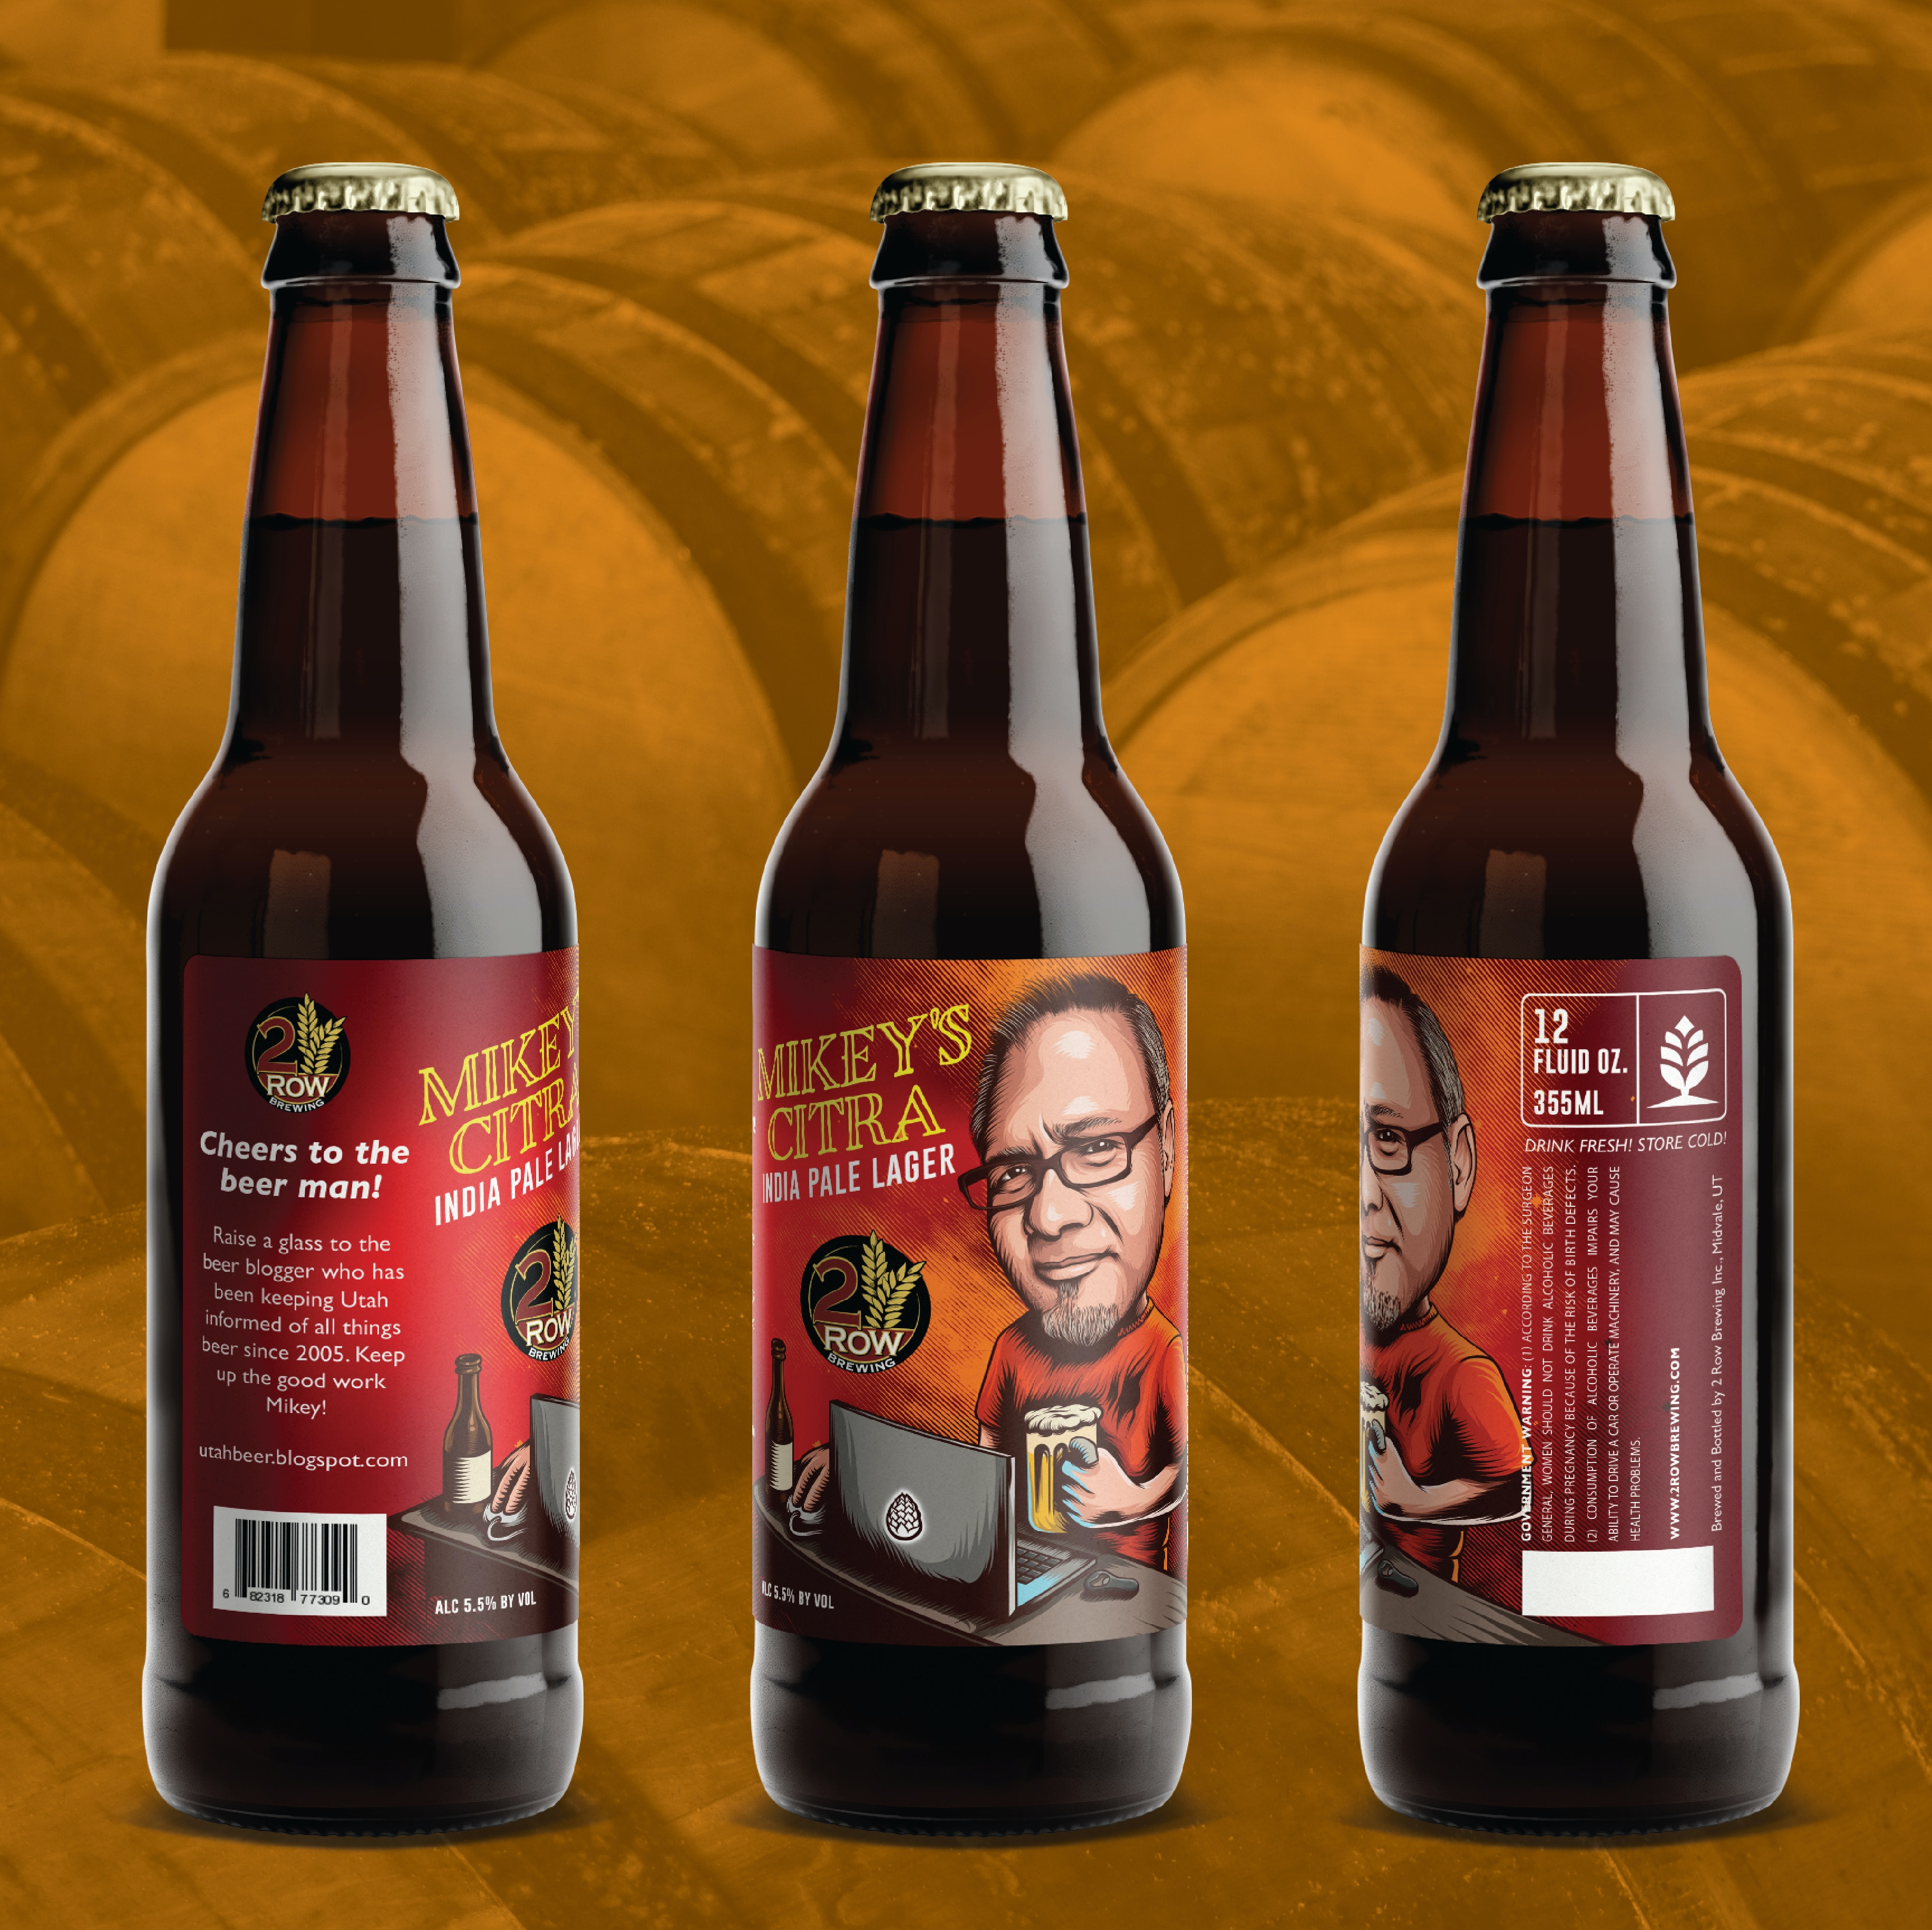 Quirky photo-based beer label design